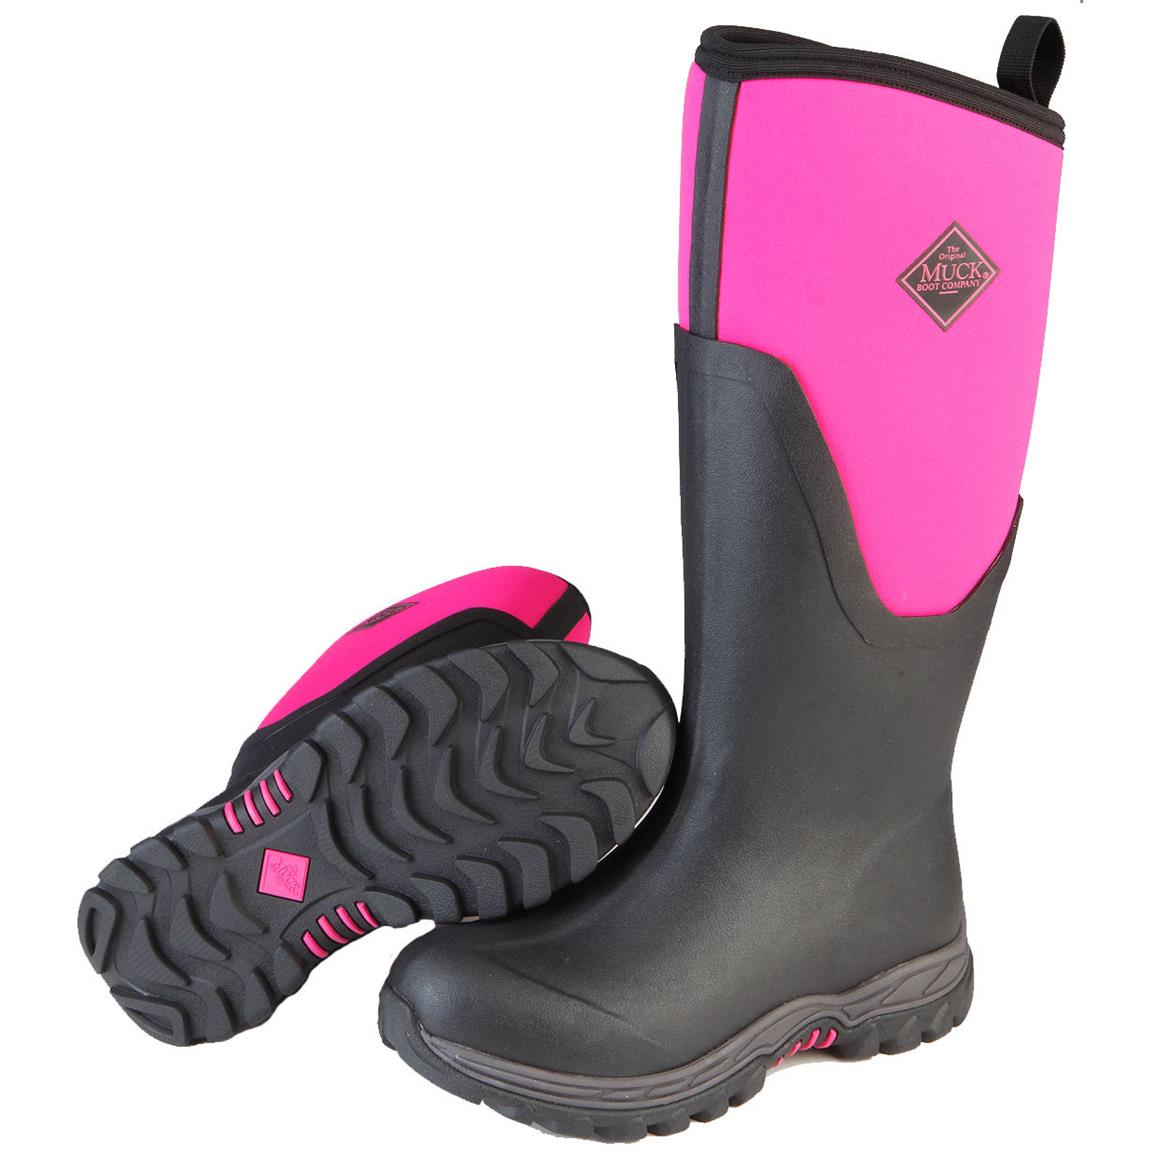 Women's Muck Arctic Sport II Tall Waterproof Insulated Rubber Boots, Pink